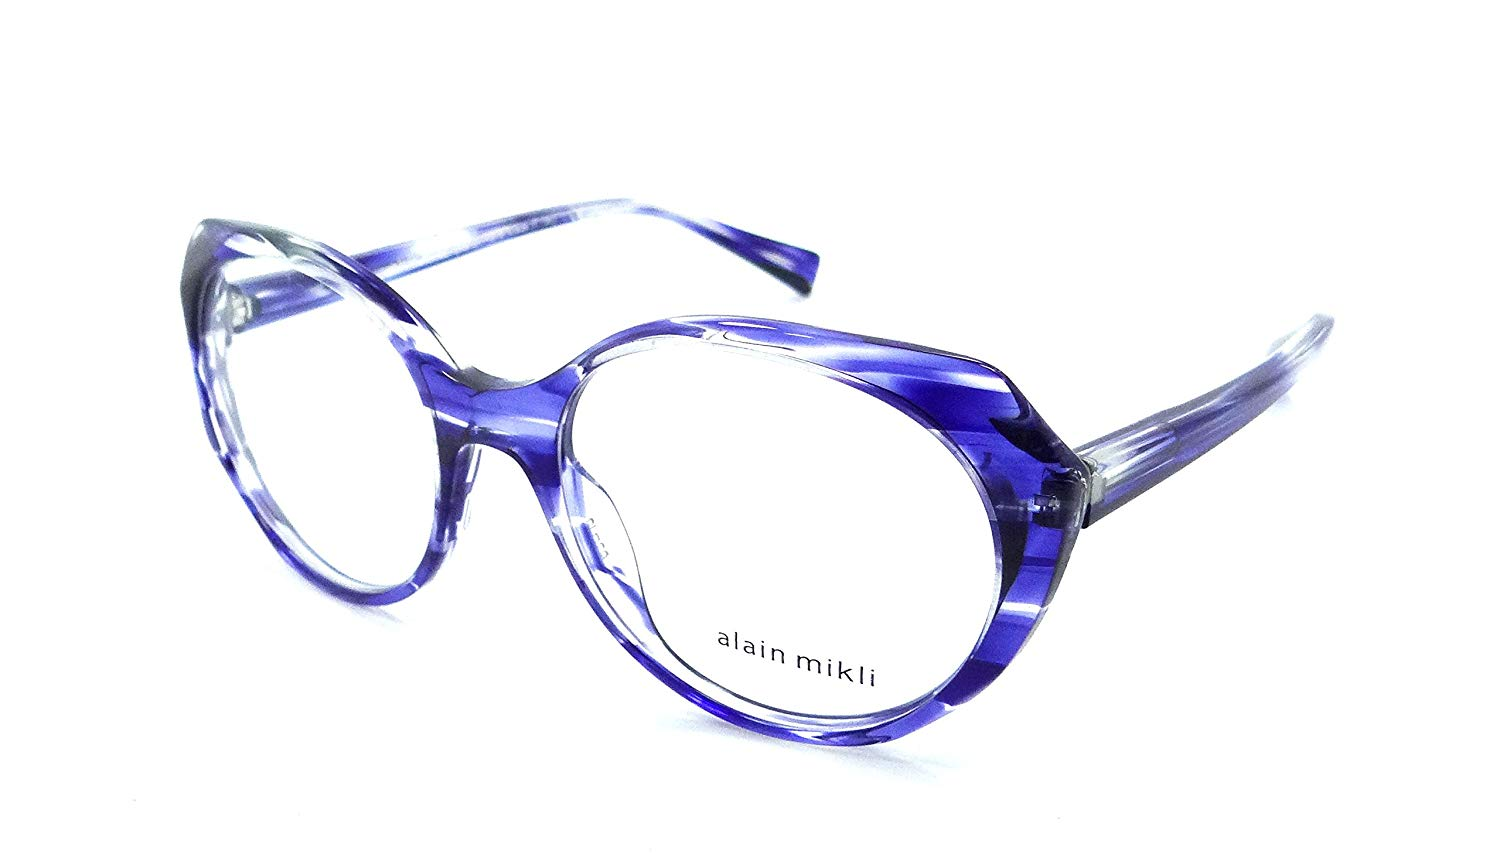 ec0c729a75a Get Quotations · Alain Mikli Rx Eyeglasses Frames A03075 004 53-18-140  Paint Blue Made in